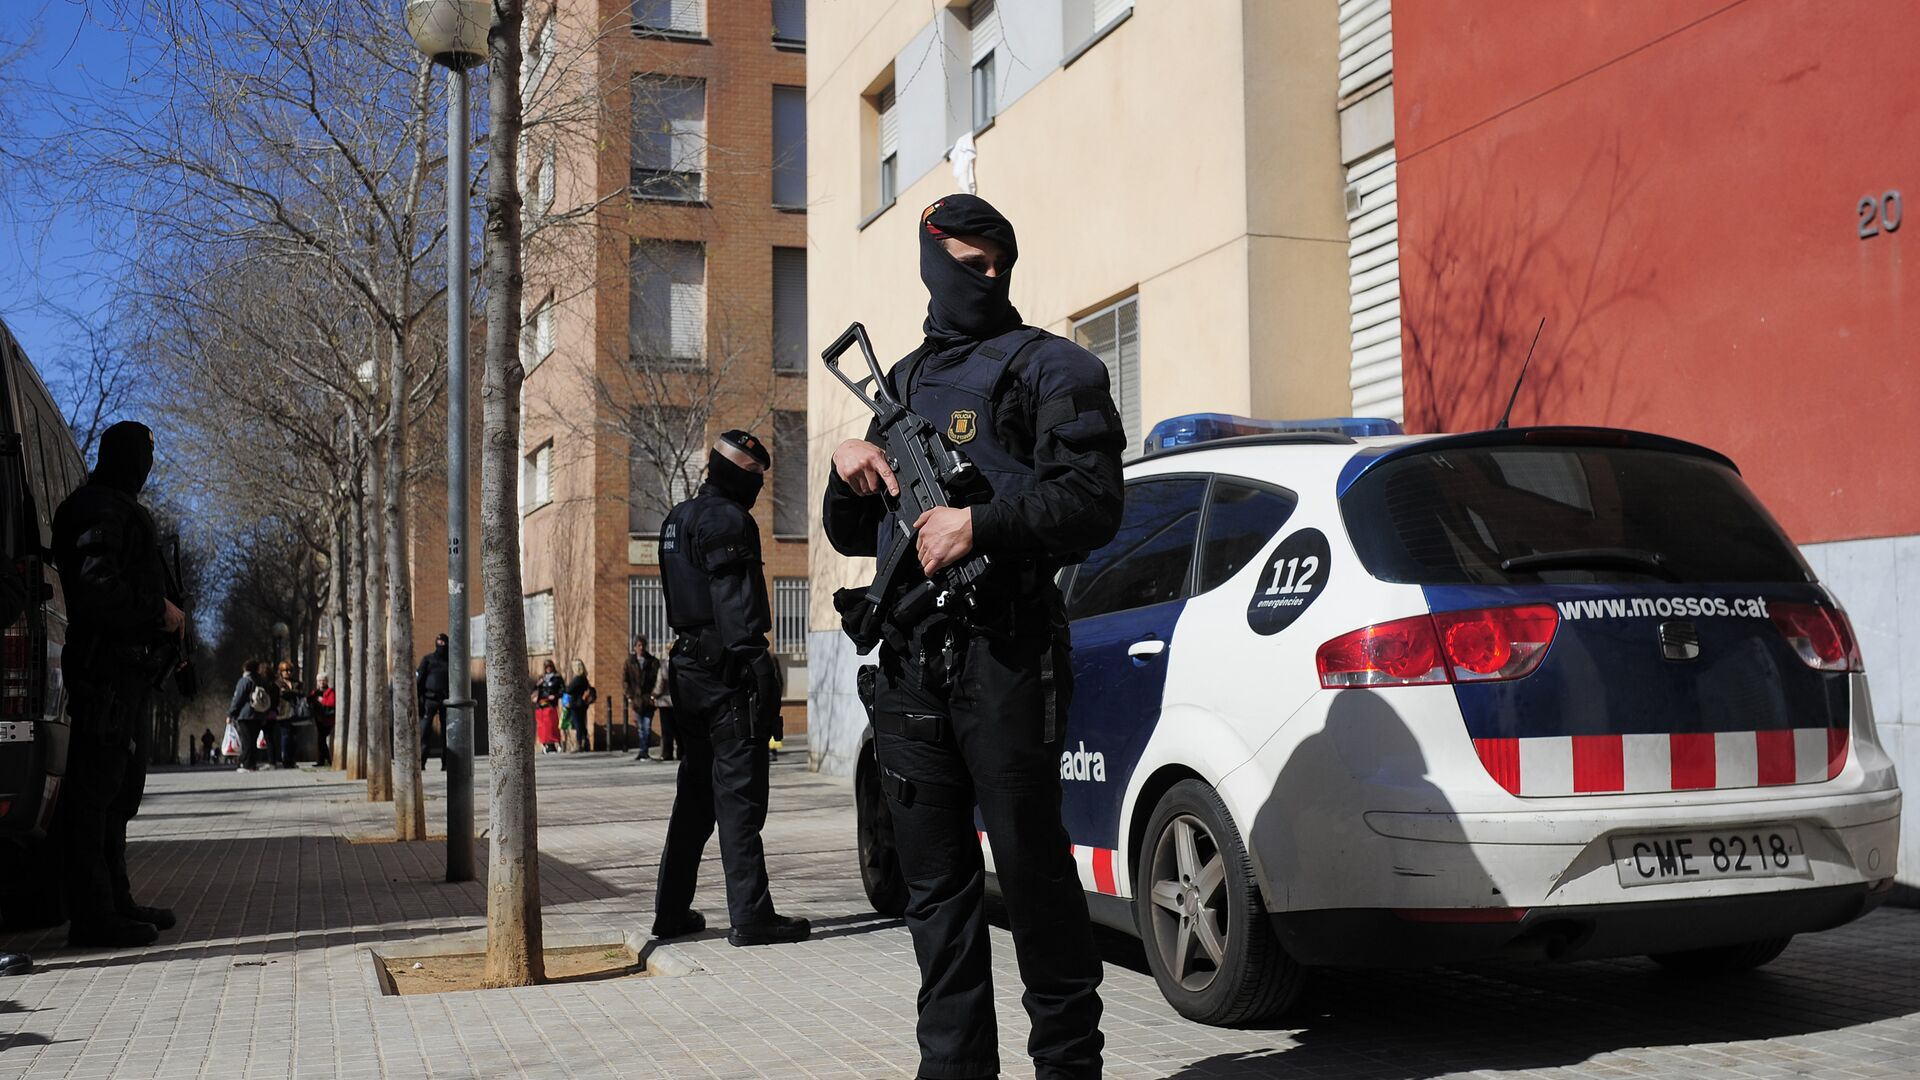 Mossos d'Esquadra regional police officers stand guard during a raid in one of the region's biggest operations against jihad activity in Sabadell, near Barcelona, Spain, Wednesday, April 8, 2015 - Sputnik Mundo, 1920, 29.04.2021